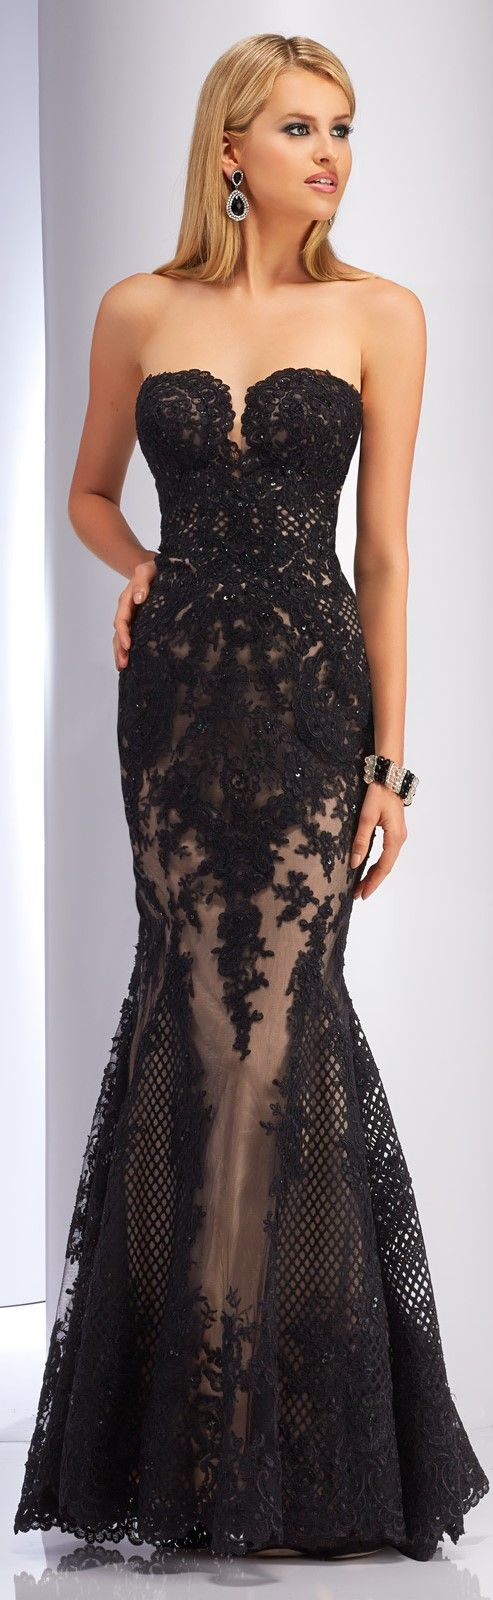 best images about Dresses on Pinterest Moda Satin and Prom